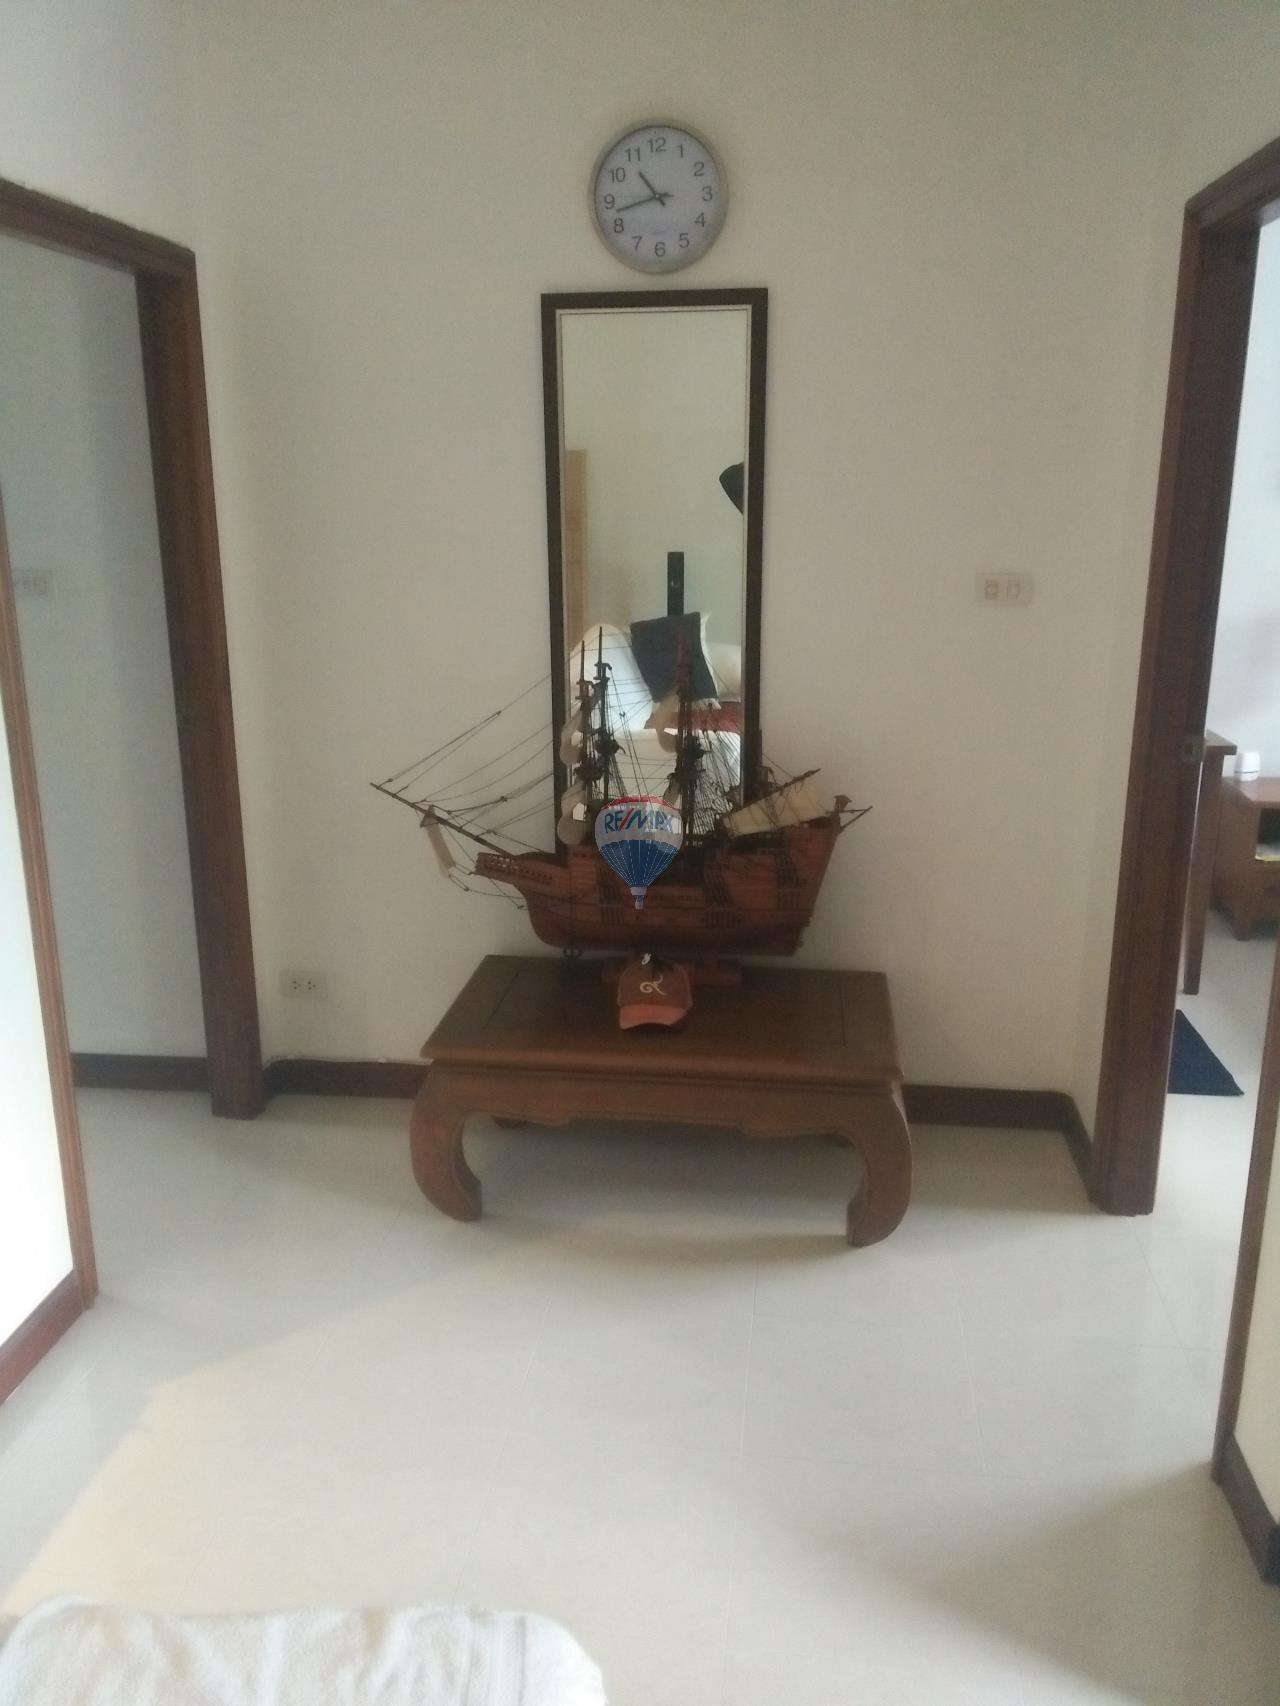 RE/MAX Top Properties Agency's Phuket,Patong Beach, 2 Bedrooms Condo For Rent 13